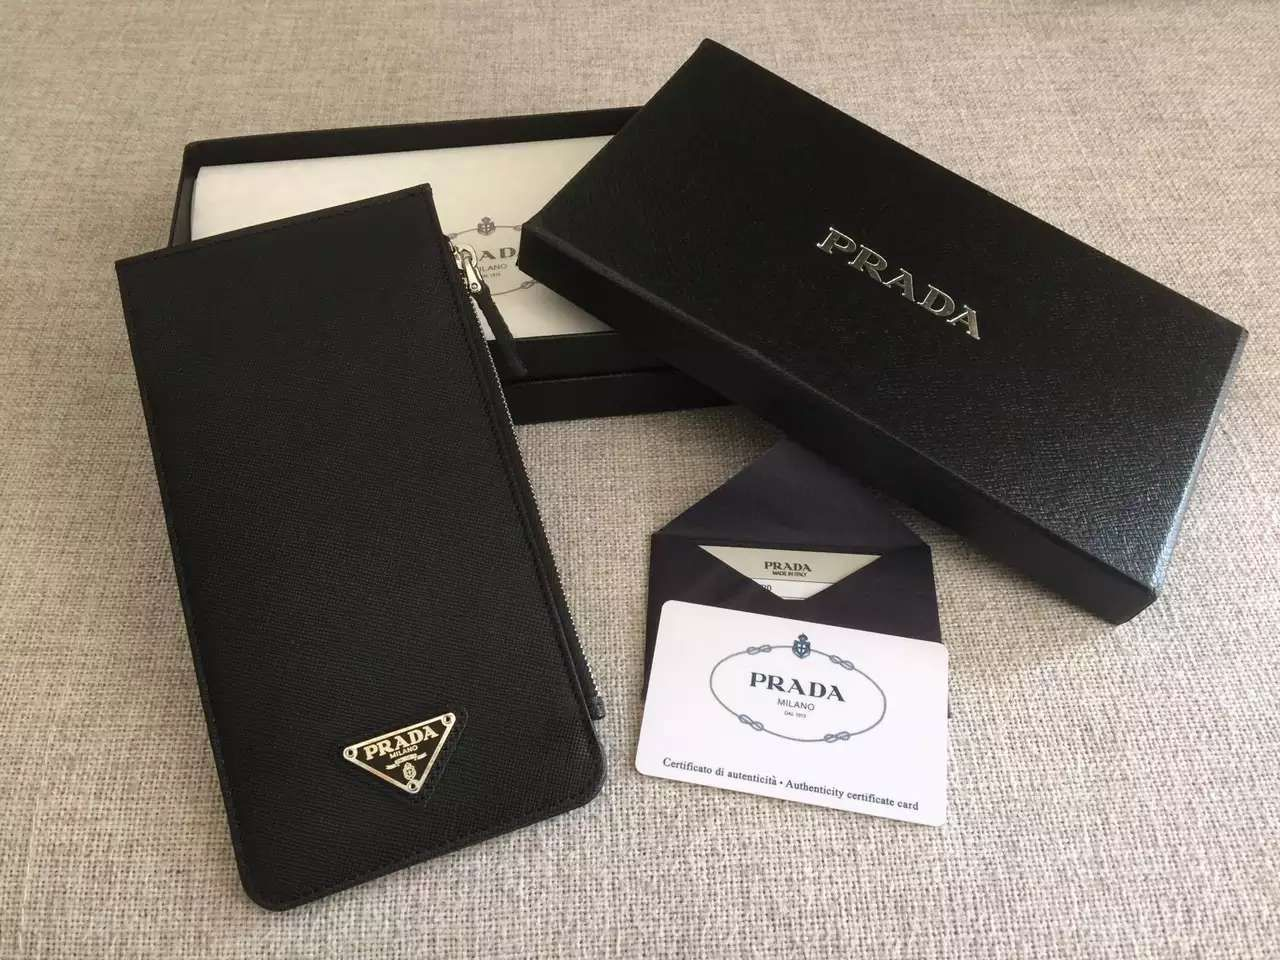 prada Wallet, ID : 43662(FORSALE:a@yybags.com), prada black briefcase, prada wallet, prada large briefcase, authentic prada bags on sale, prada jessica simpson handbags, prada leather messenger bag, prada online shopping, prada tignanello handbags, prada company profile, prada leopard handbag, prada mensleather wallets, prada mens wallets on sale #pradaWallet #prada #womens #prada #handbags